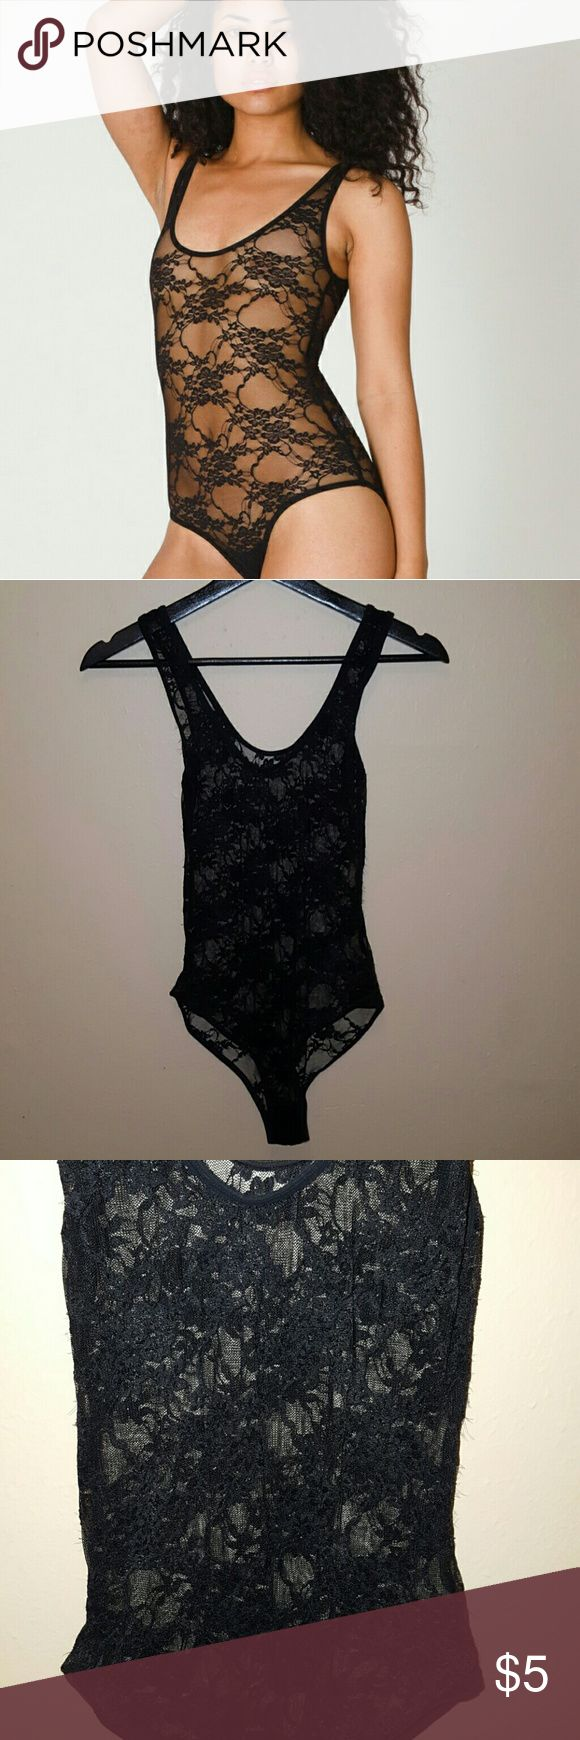 American Apparel Black Lace Bodysuit American Apparel black lace bodysuit in size small. This is definitely has some signs of wear, but it's still got some life left in it!! There is some fraying and loose strings in the lace shown in the photos. The tag was clipped because it shows through the lace. Since American Apparel has stopped making clothes, I'm selling cheap in case anyone wants a last chance at this piece. American Apparel Tops